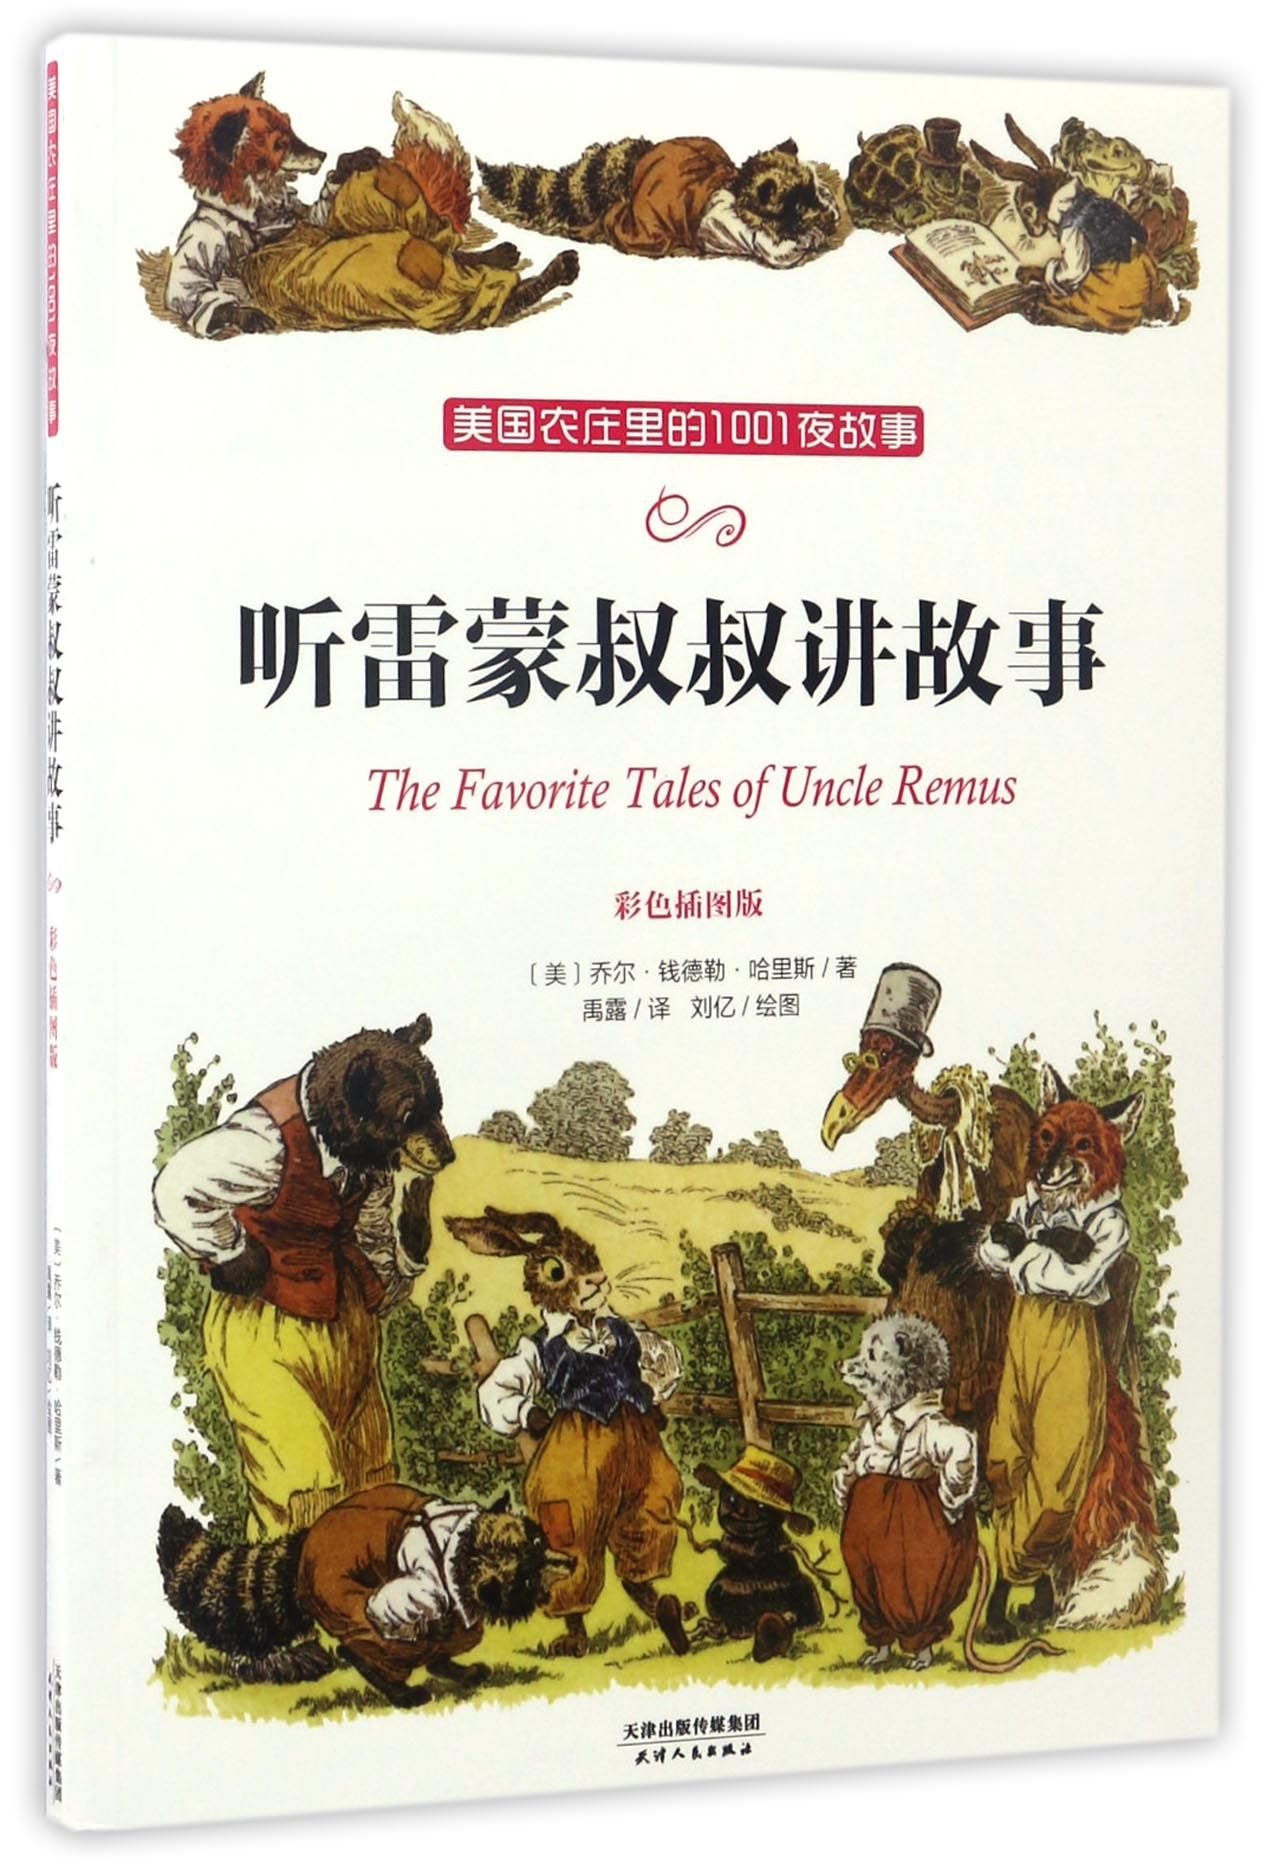 Download The Favorite Tales of Uncle Remus (Chinese Edition) pdf